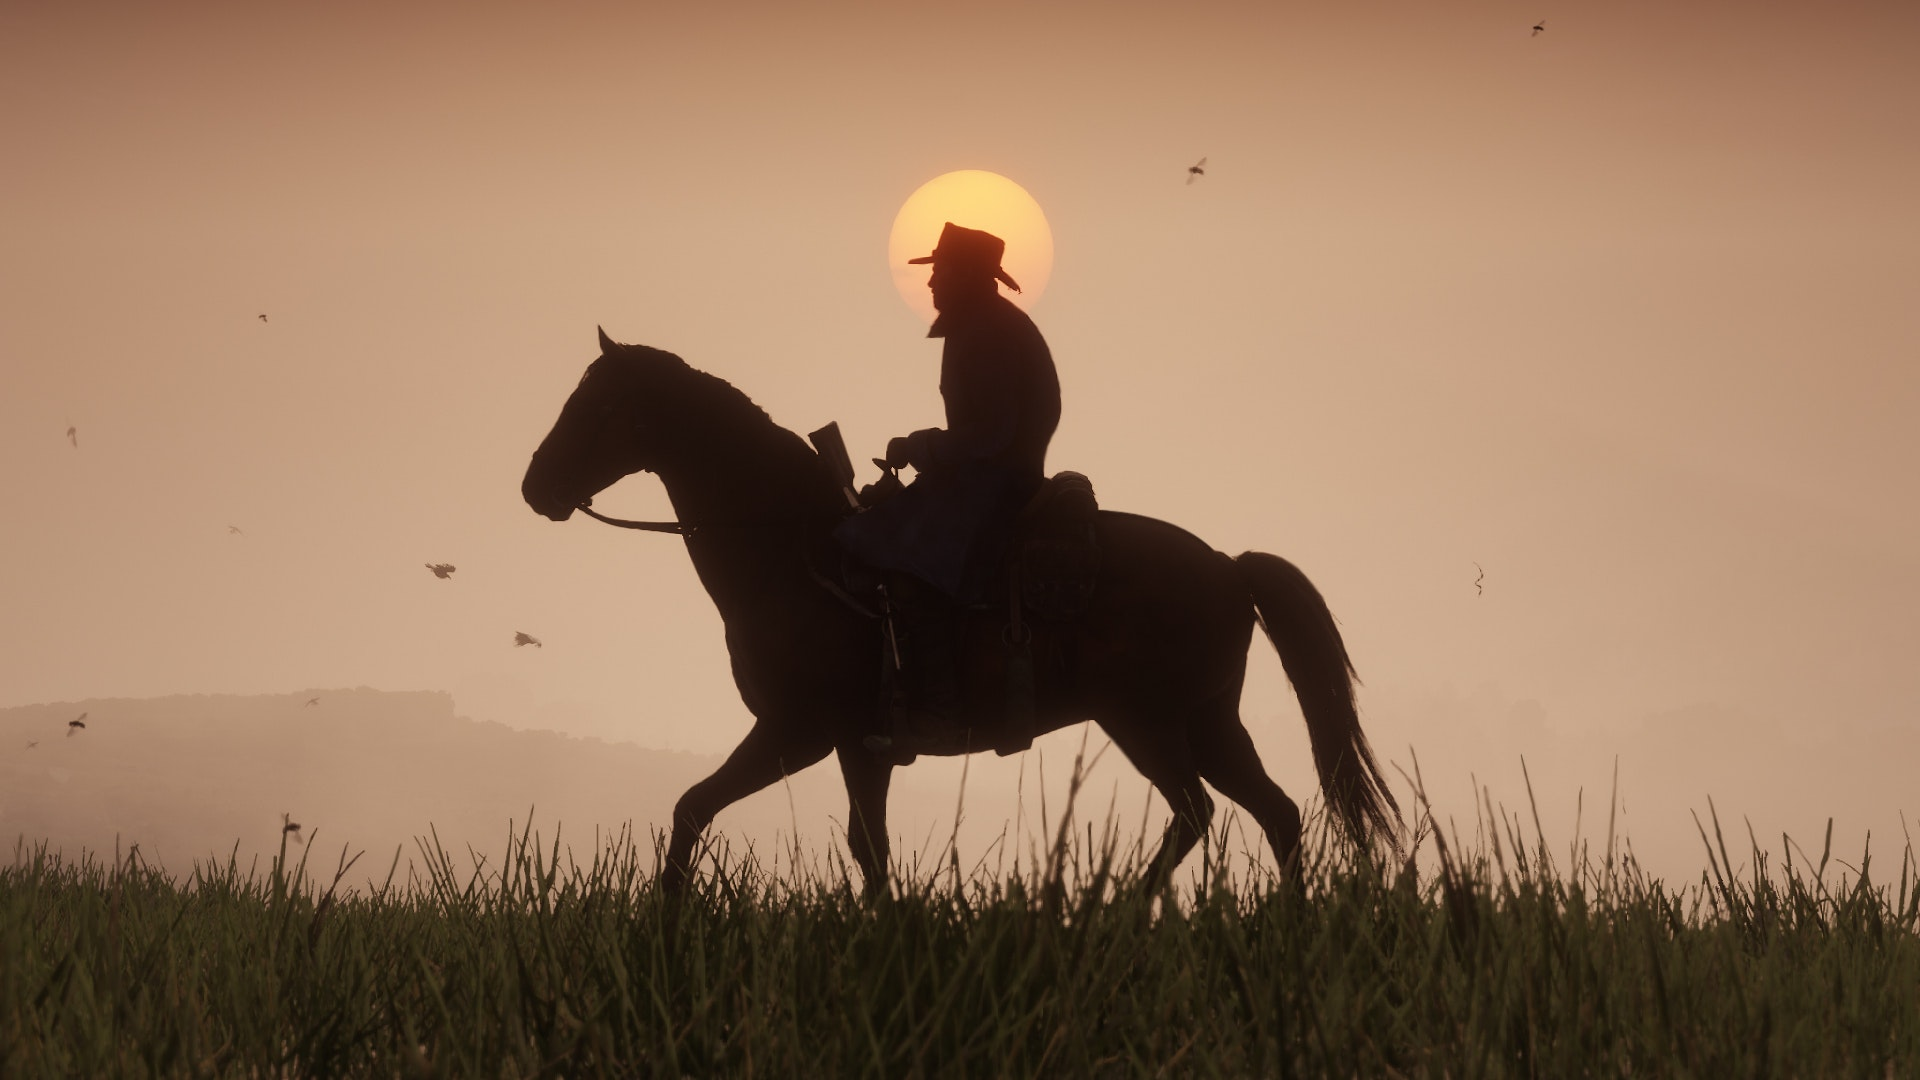 When Is The Official Release Date For Red Dead Redemption